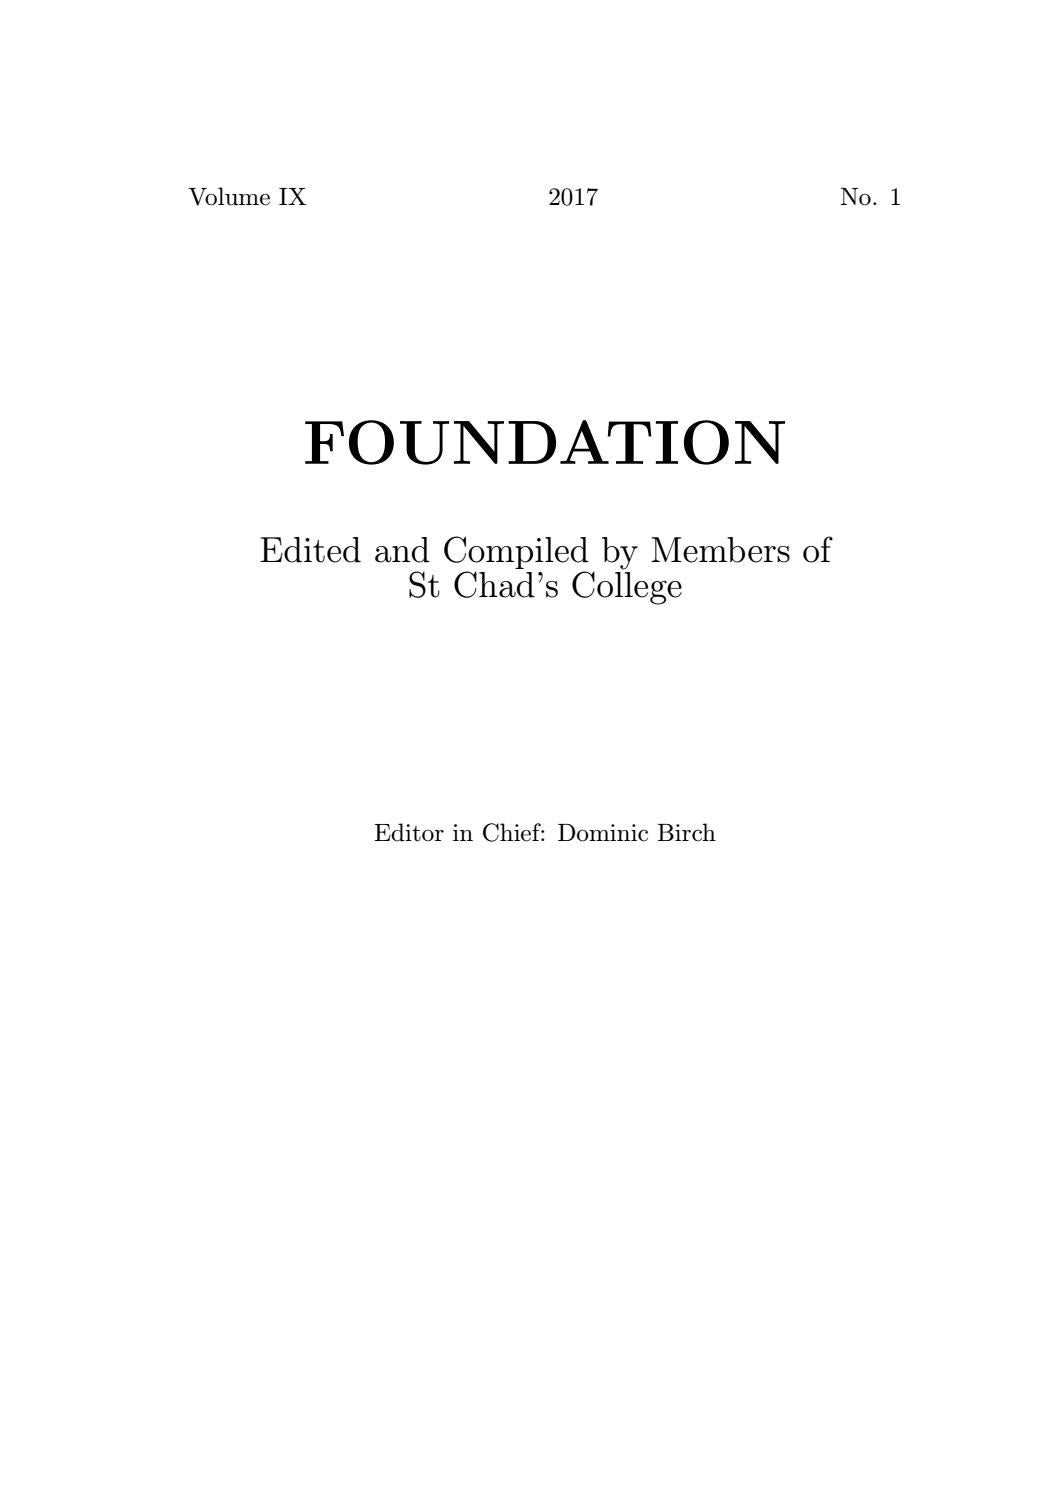 Foundation ix by st chads college publications issuu fandeluxe Choice Image